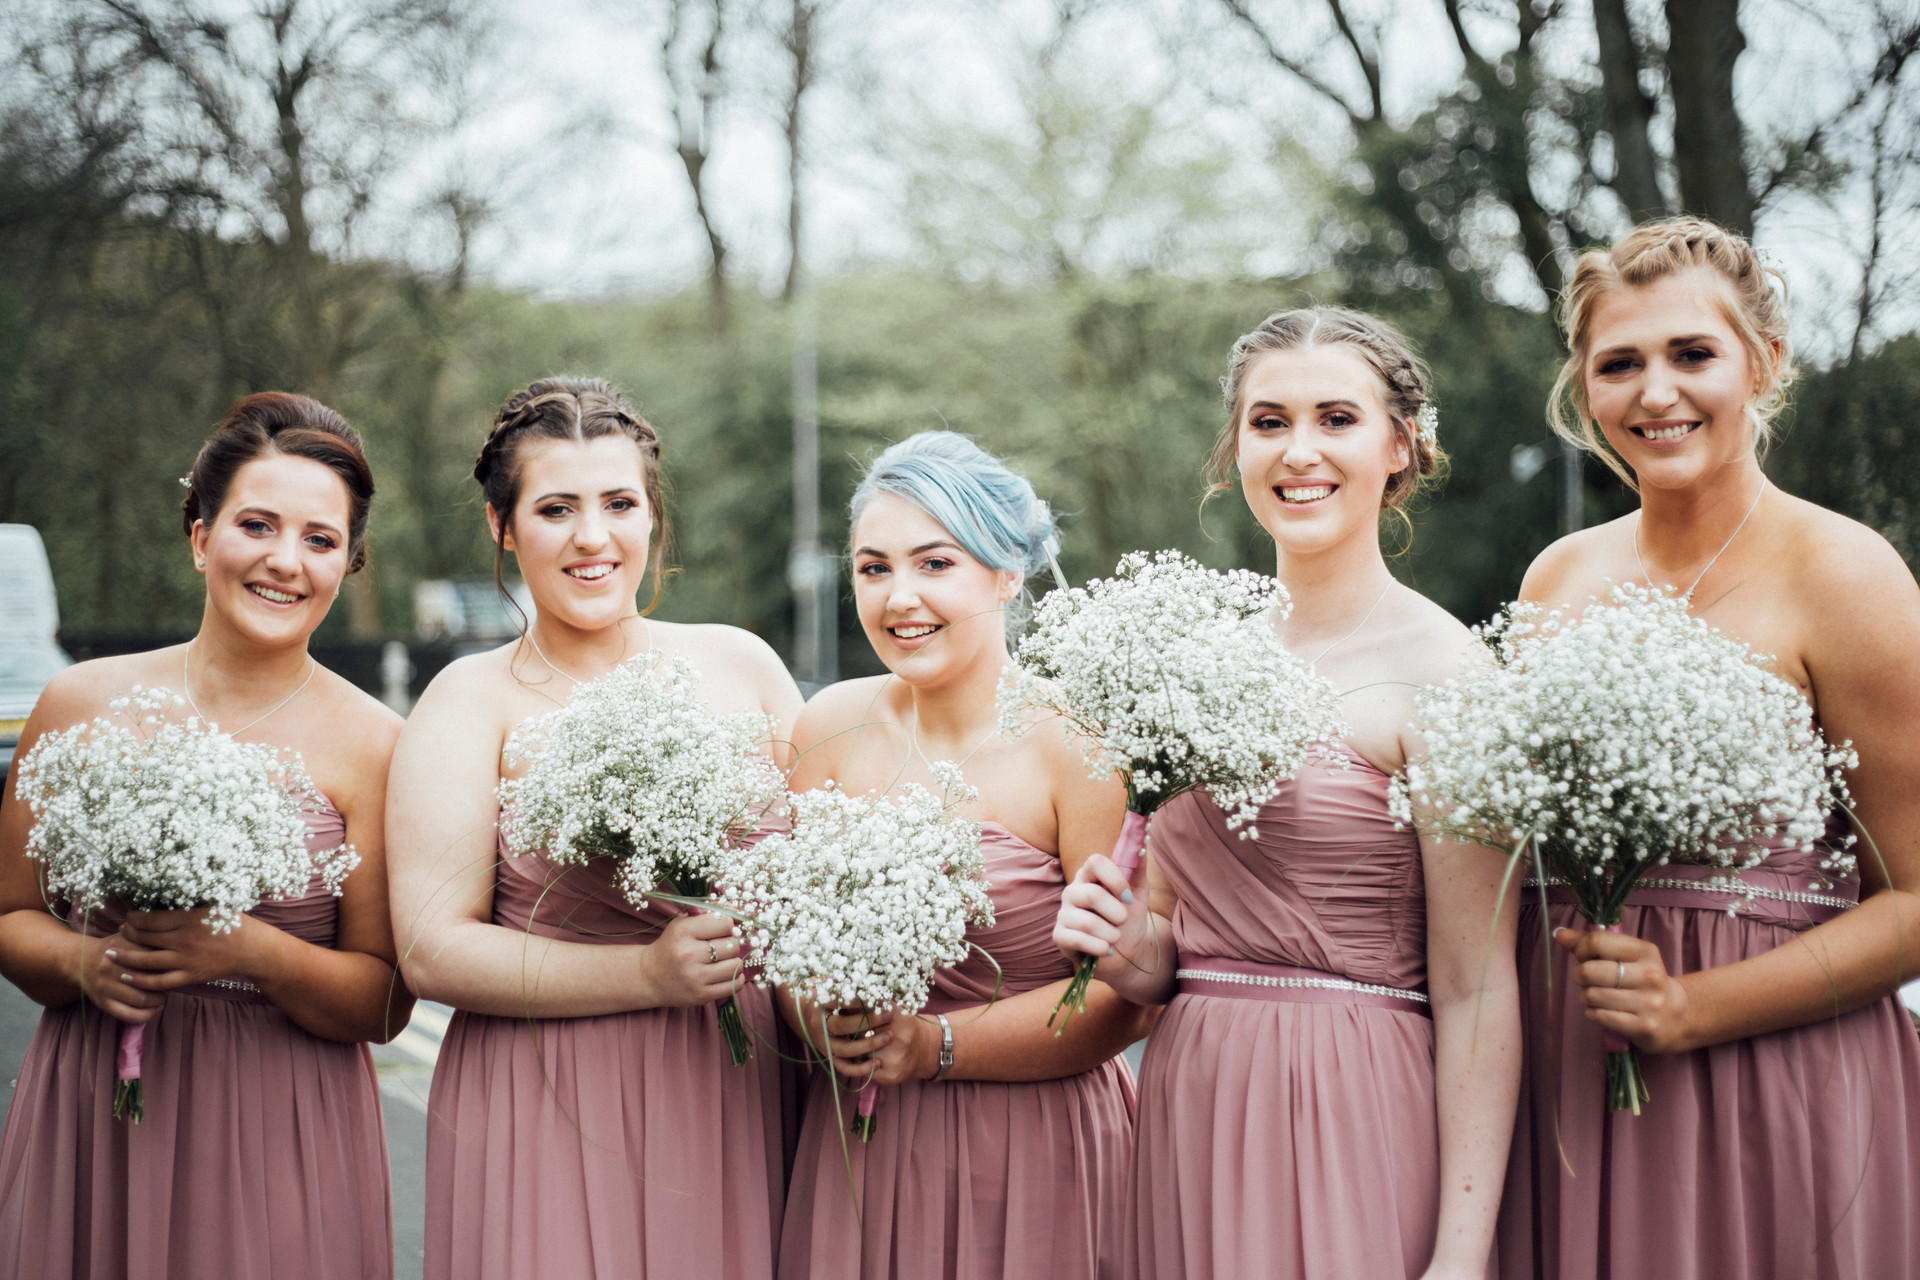 female wedding photographer lepton